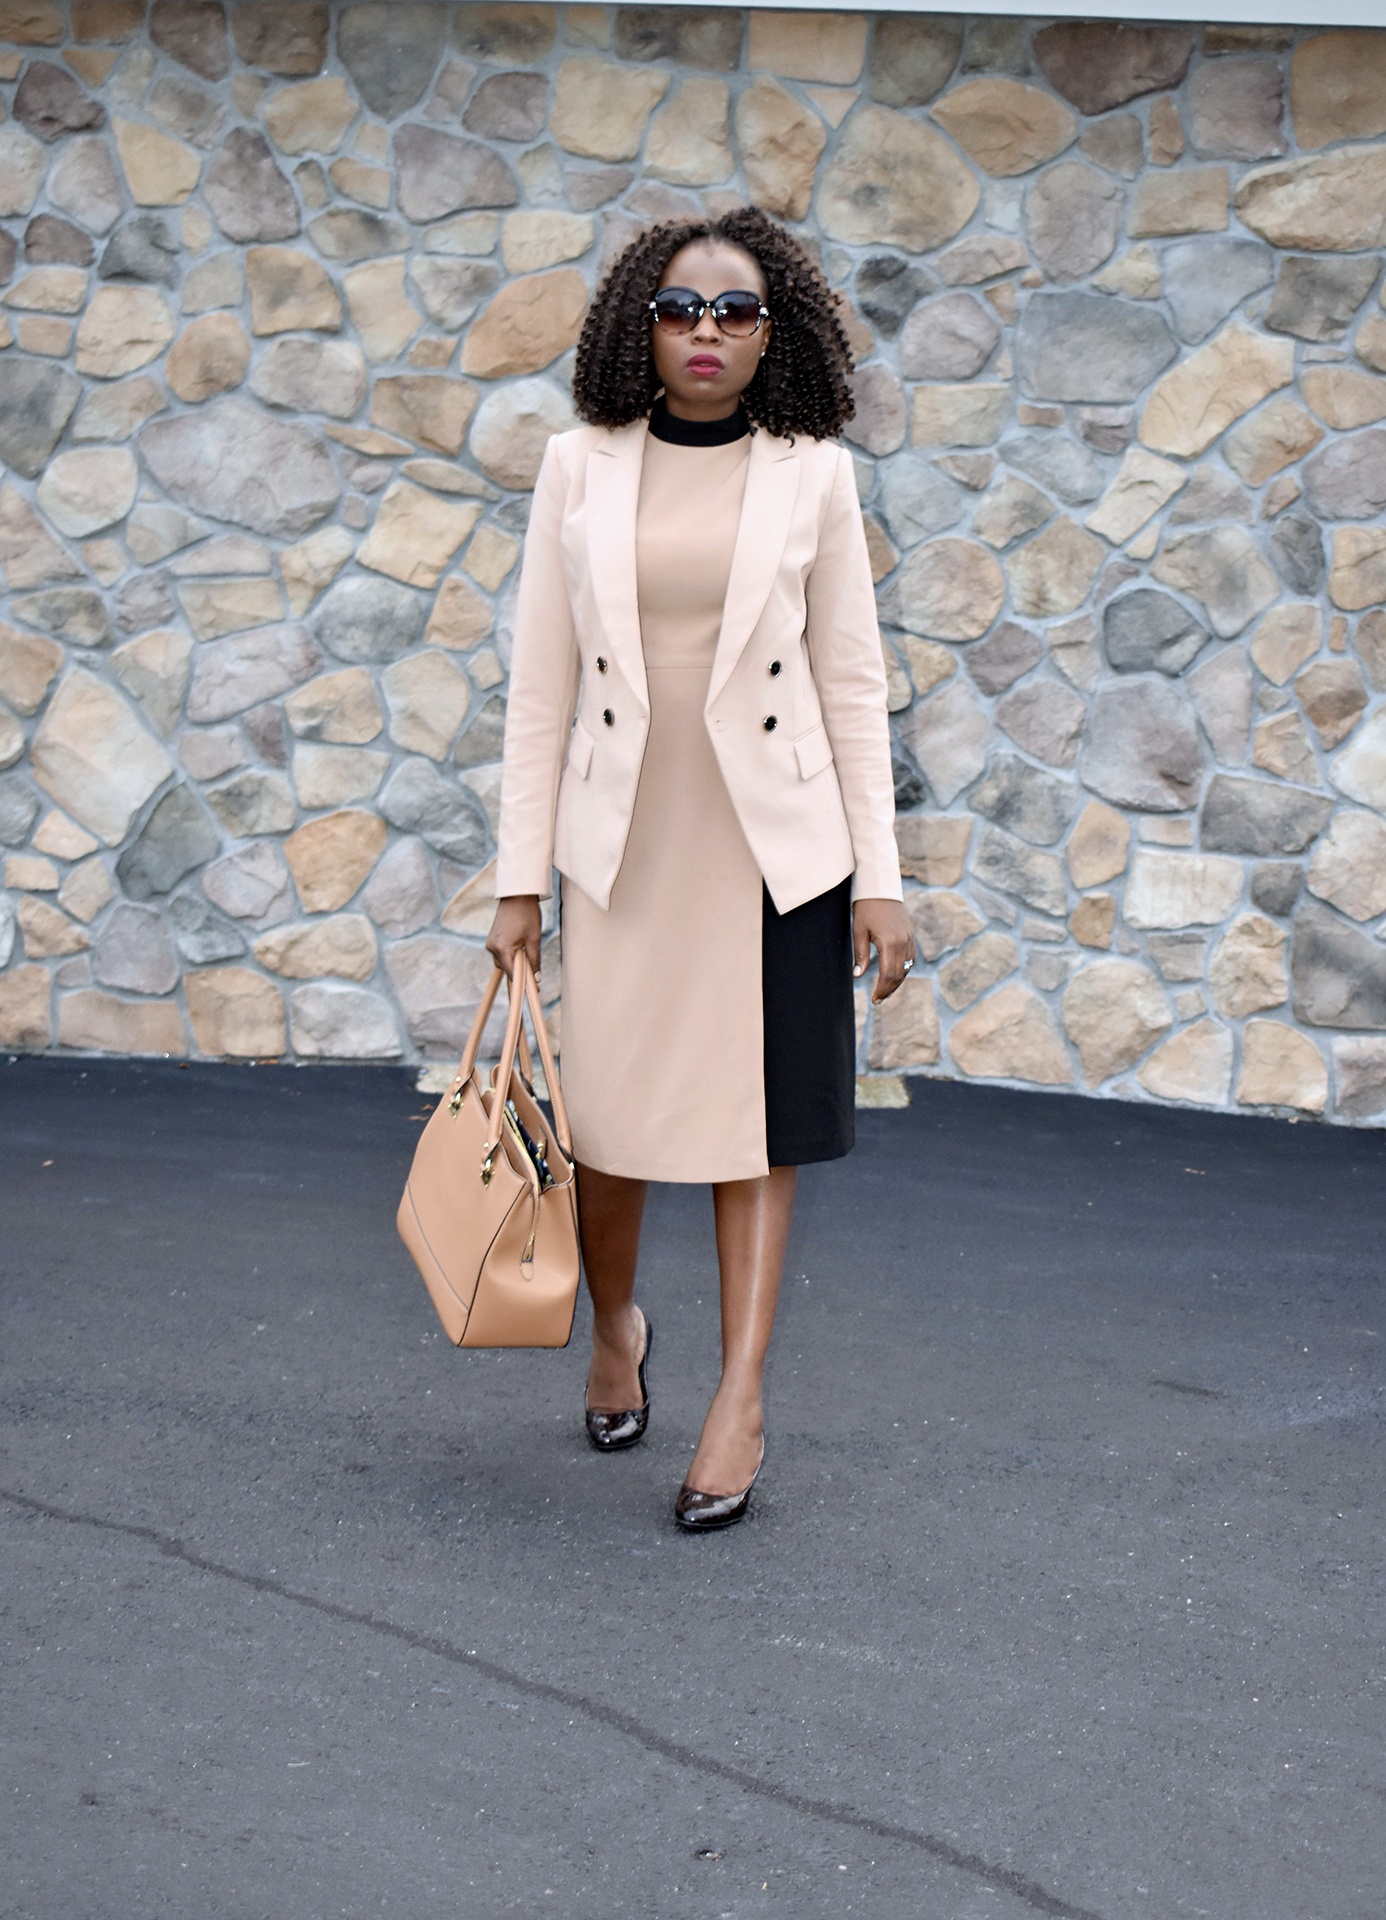 Fall office look- Wrap dress + Balmain inspired blazer graphic